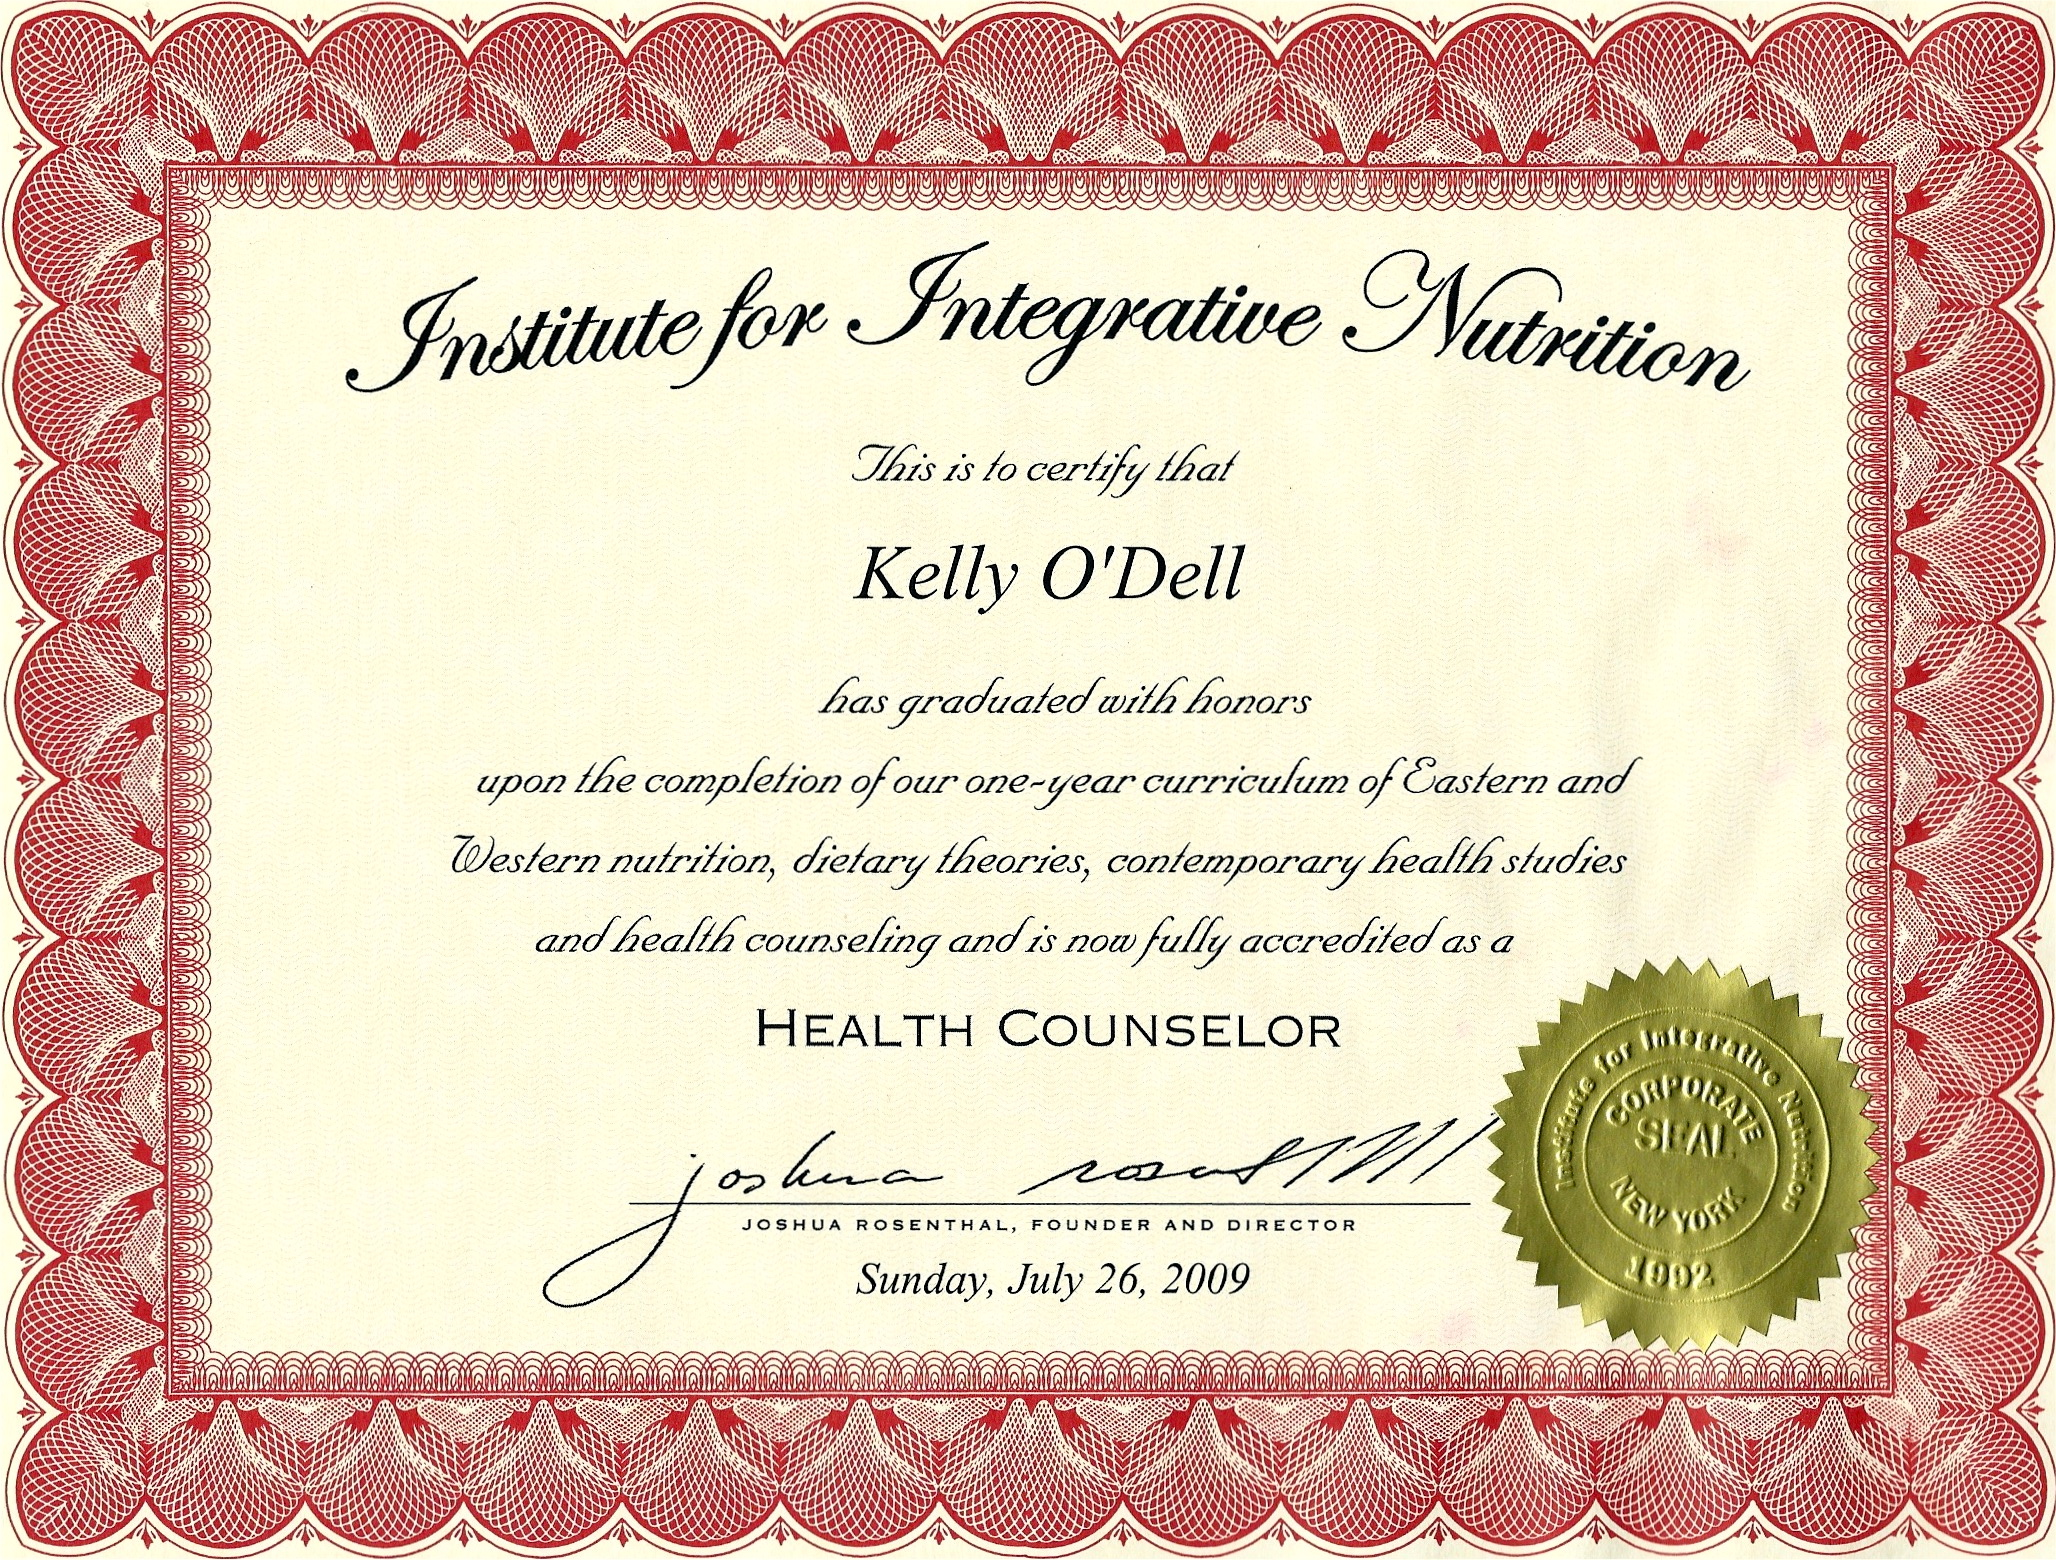 Institute For Integrative Nutrition Accreditation Besto Blog